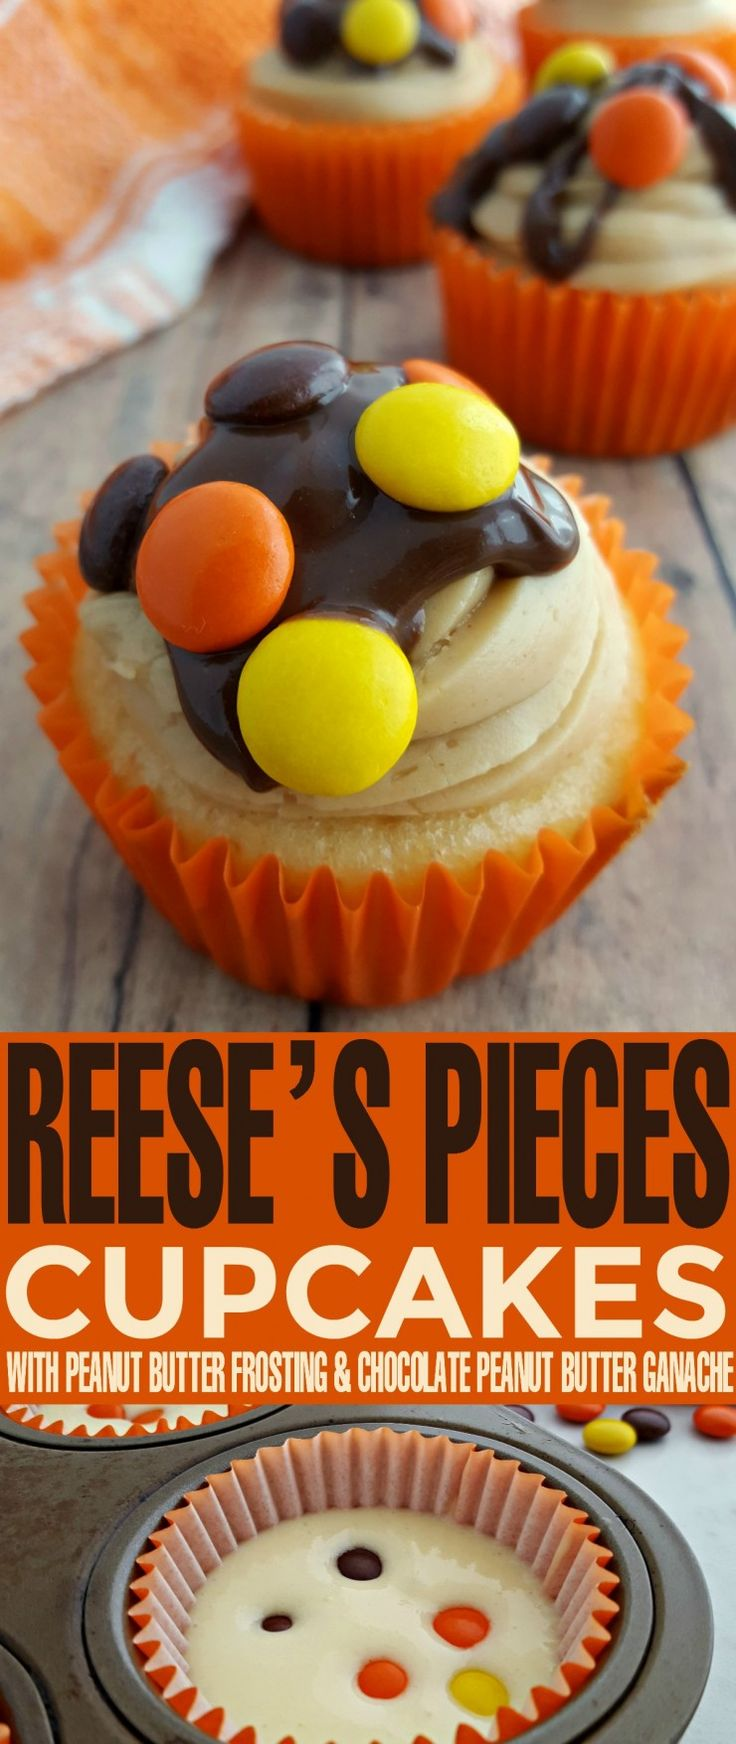 These Reese's Pieces Cupcakes with Peanut Butter Frosting and Chocolate Peanut Butter Ganache are simply decadent and delicious. There is nothing like chocolate and peanut better and this cupcake is perfect for any sweet tooth.